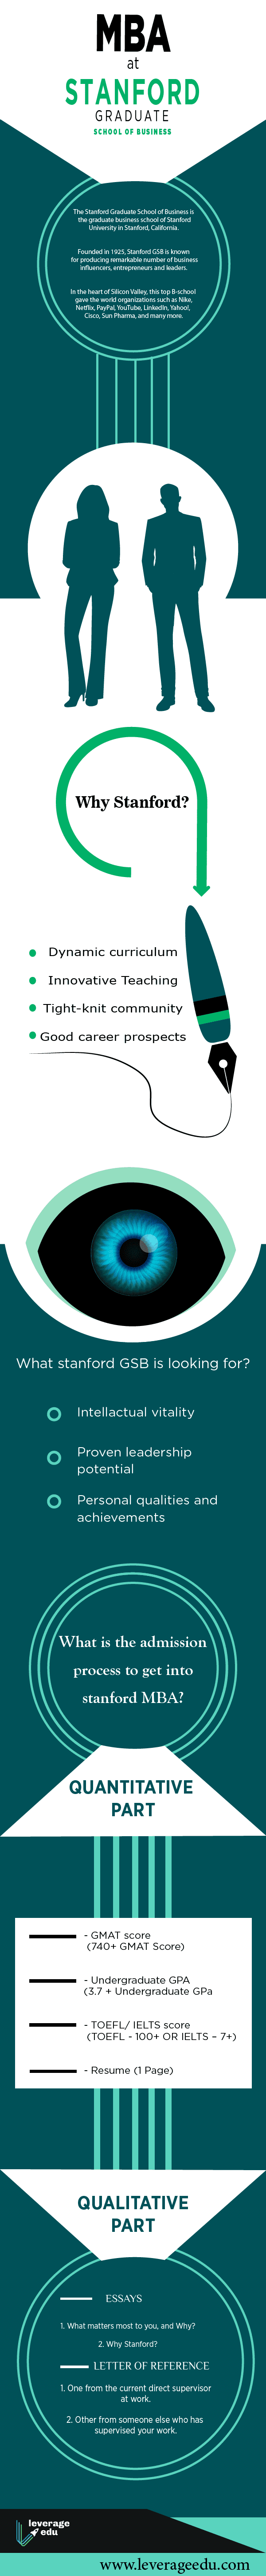 Stanford GSB - How to get into Stanford MBA | Leverage Edu